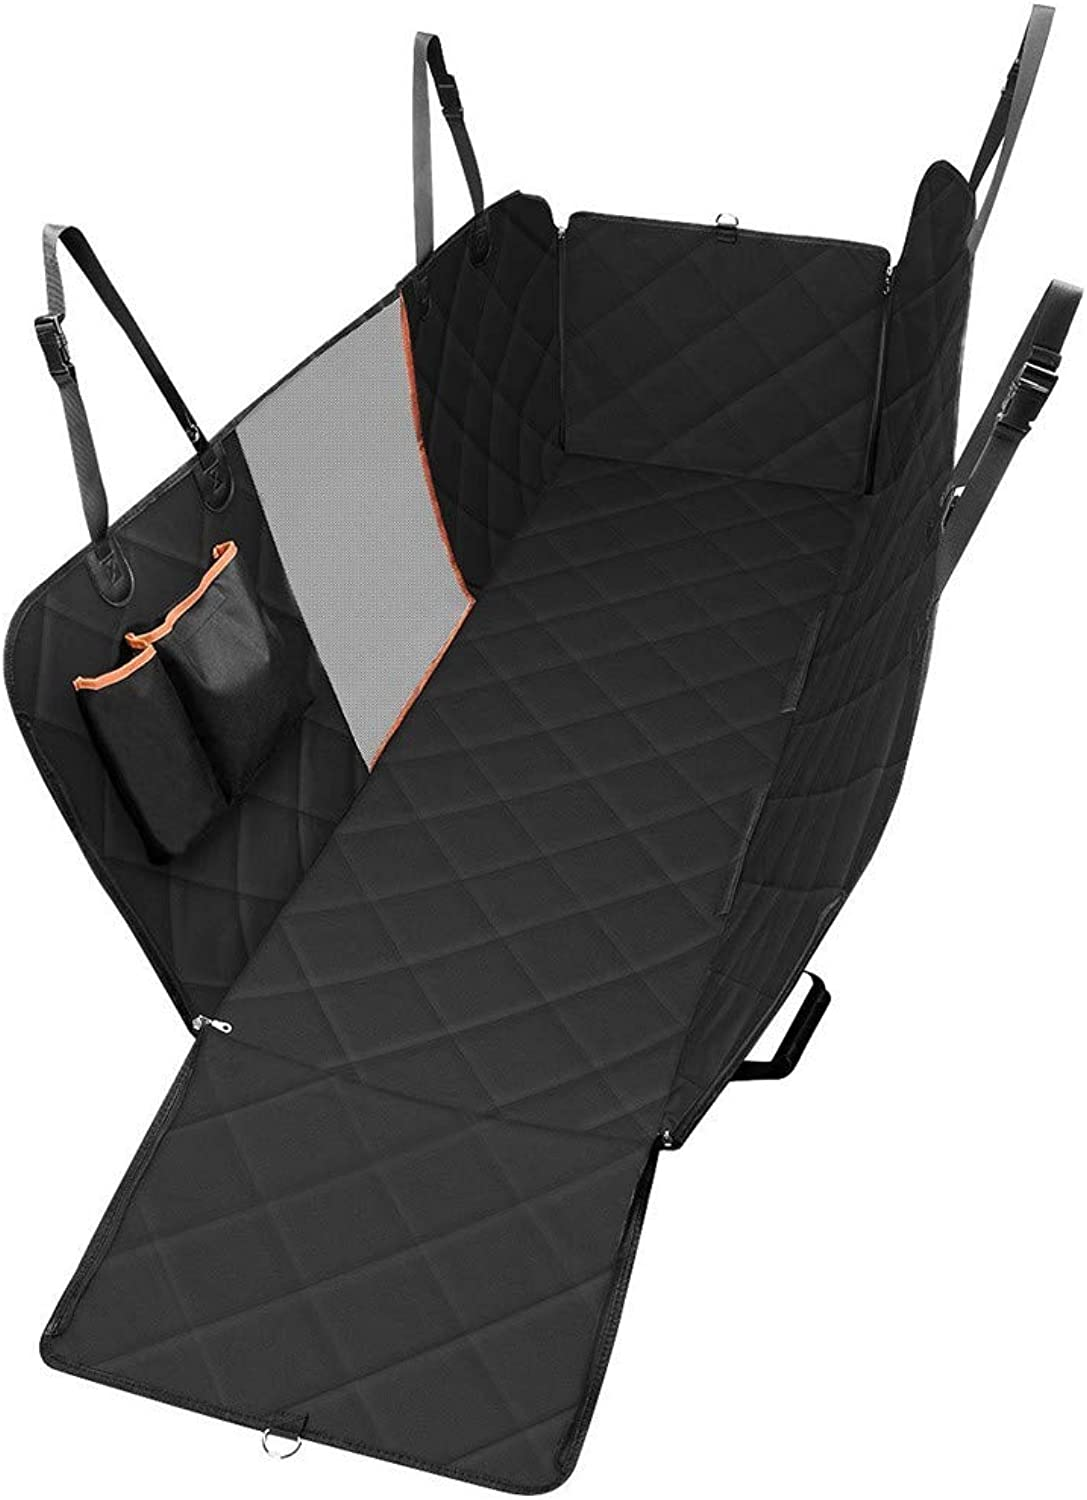 Dog car seat cover Pet Seat Cover Dog Car Seat Cover with Mesh Viewing Window Storage Pocket Dog Hammock Waterproof NonScratch Large Backseat Cover Nonslip Backing and Seat Anchors for Cars Trucks SU